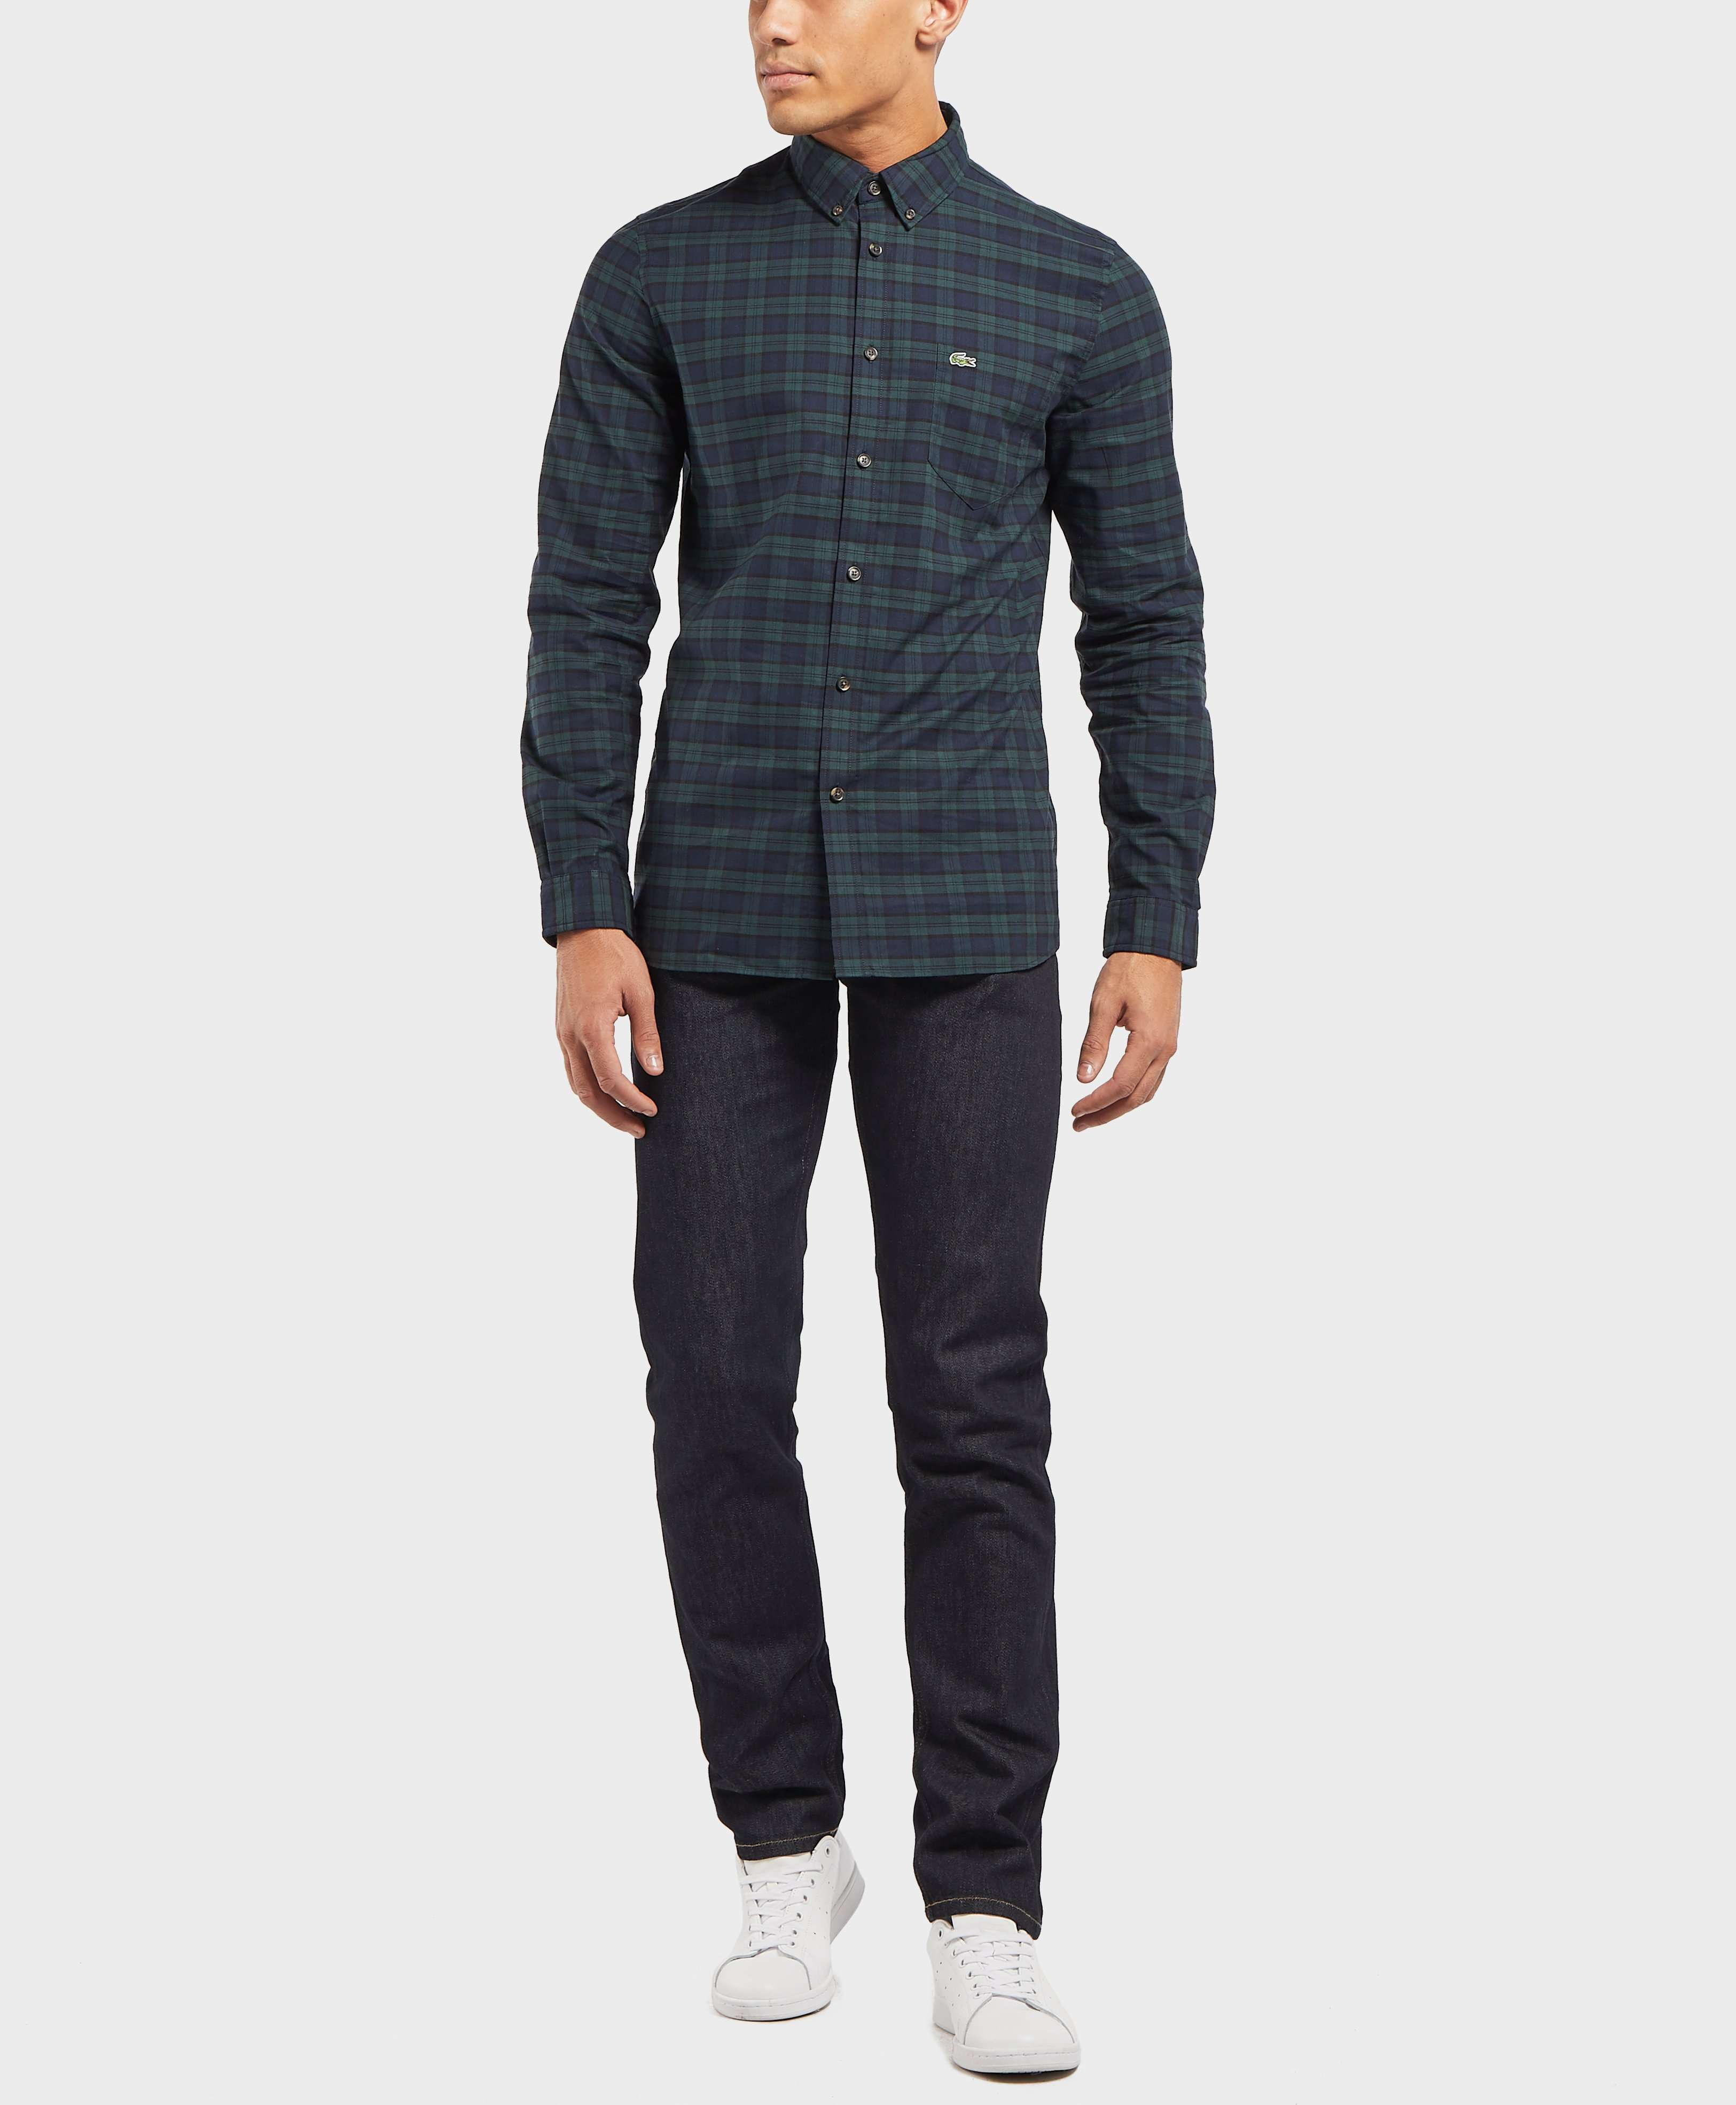 Lacoste Check Twill Long Sleeve Shirt